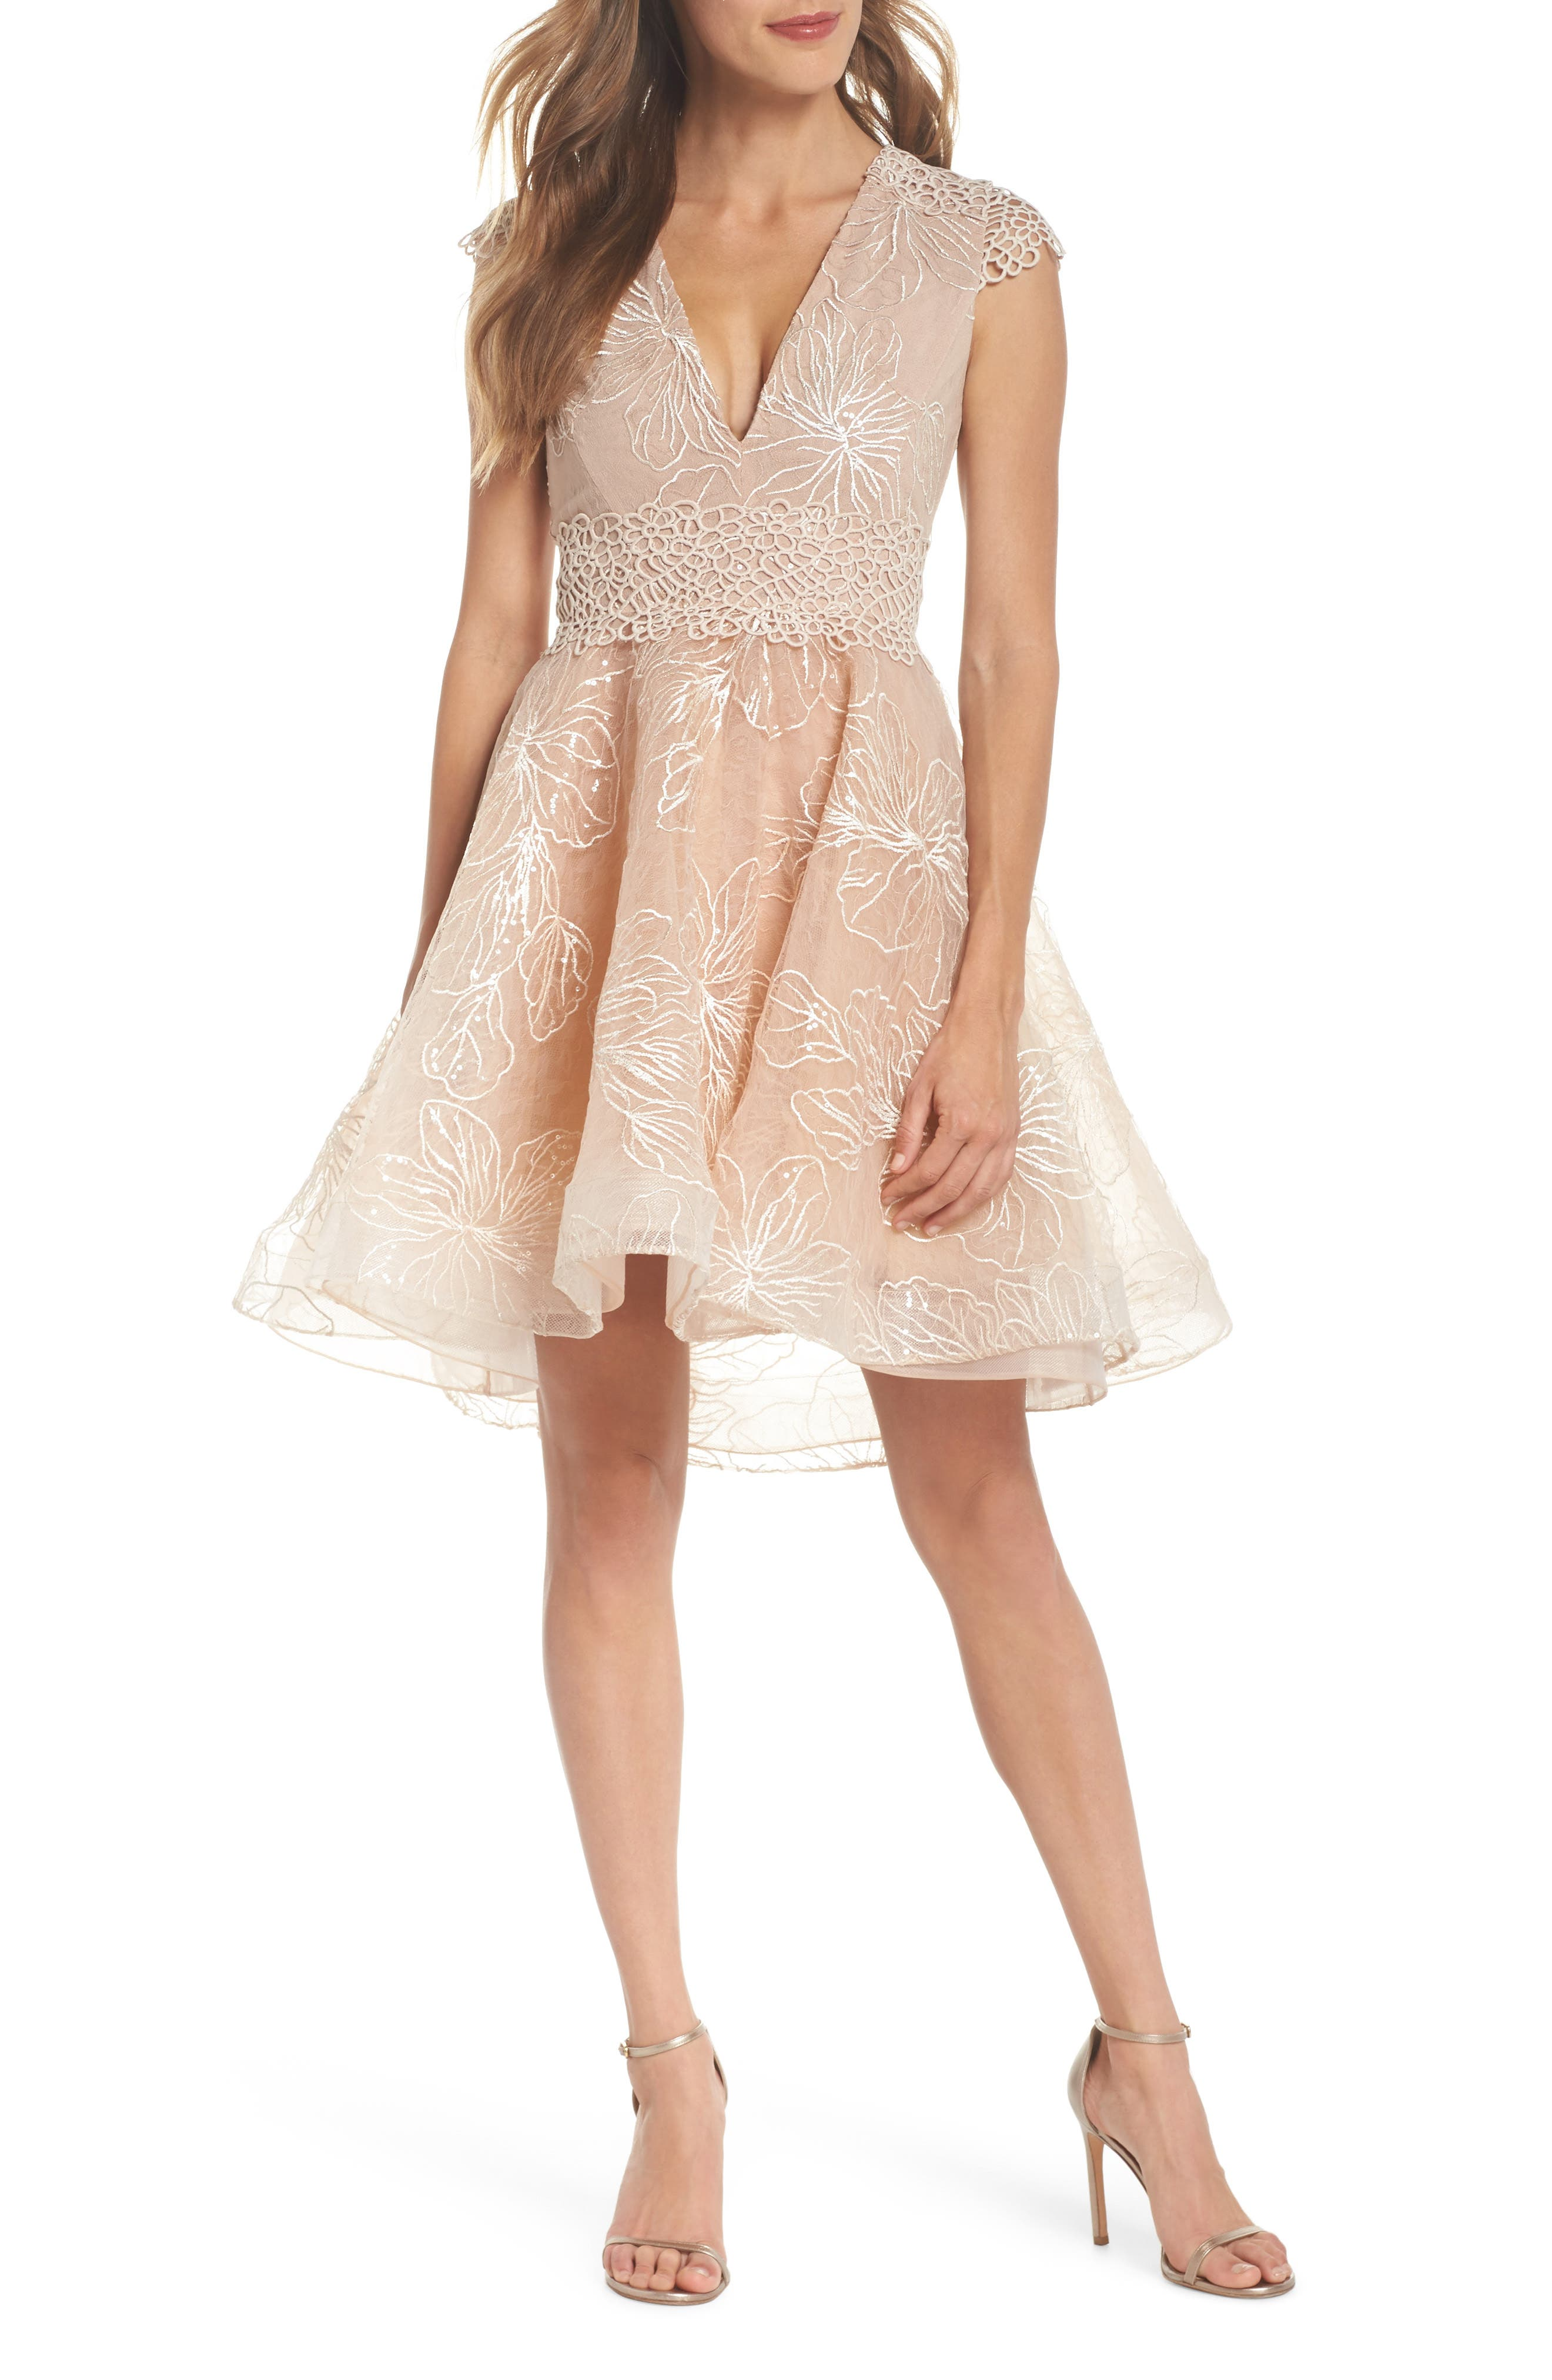 Fiore Sequin Fit & Flare Dress,                         Main,                         color, 250